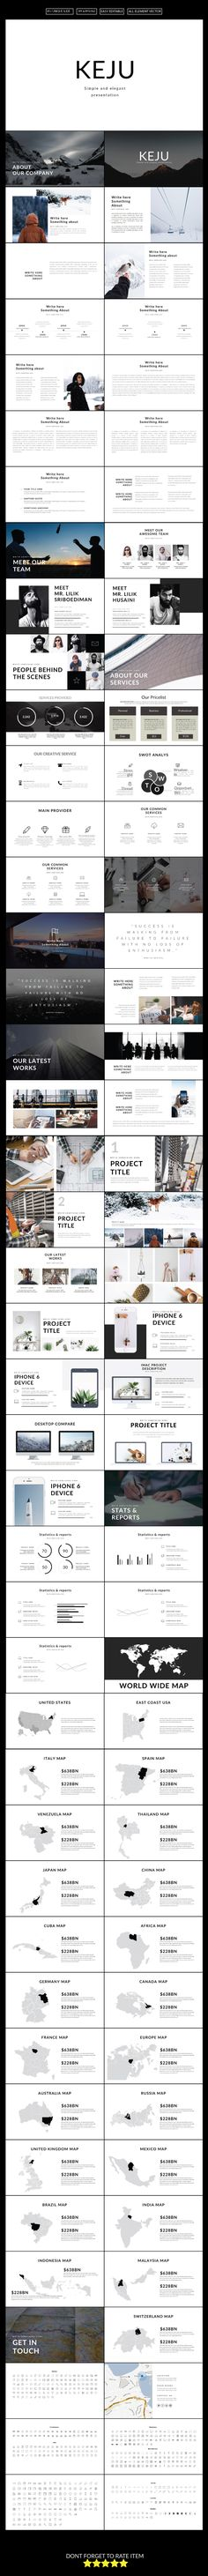 Keju Multipurpose Powerpoint Presentation Template